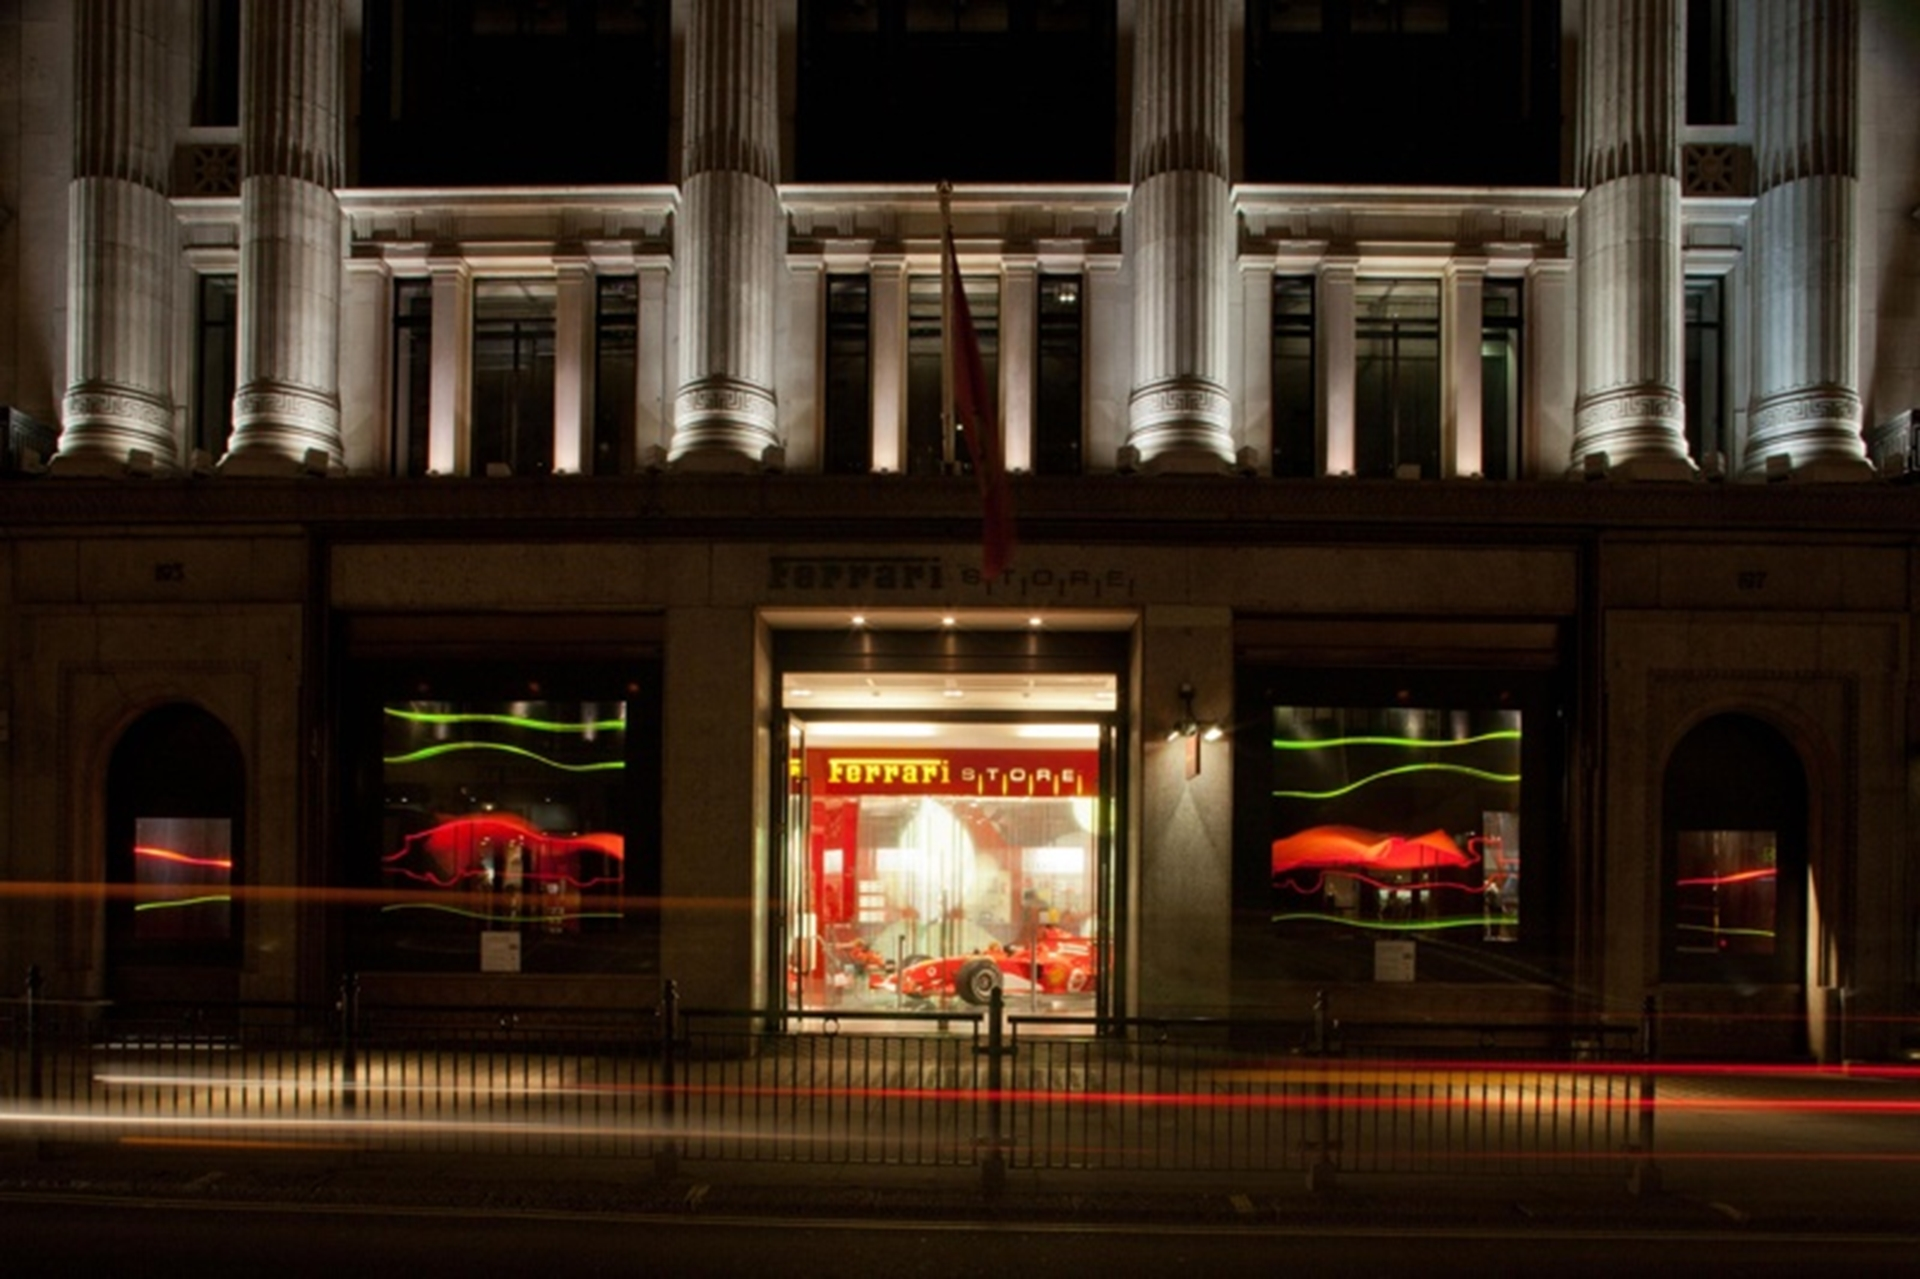 The regent street windows project 2012 - The Project Combines Cutting Edge Architecture With Unique Retail Design To Challenge Expectations And Bring A New Approach To The Shopping Experience